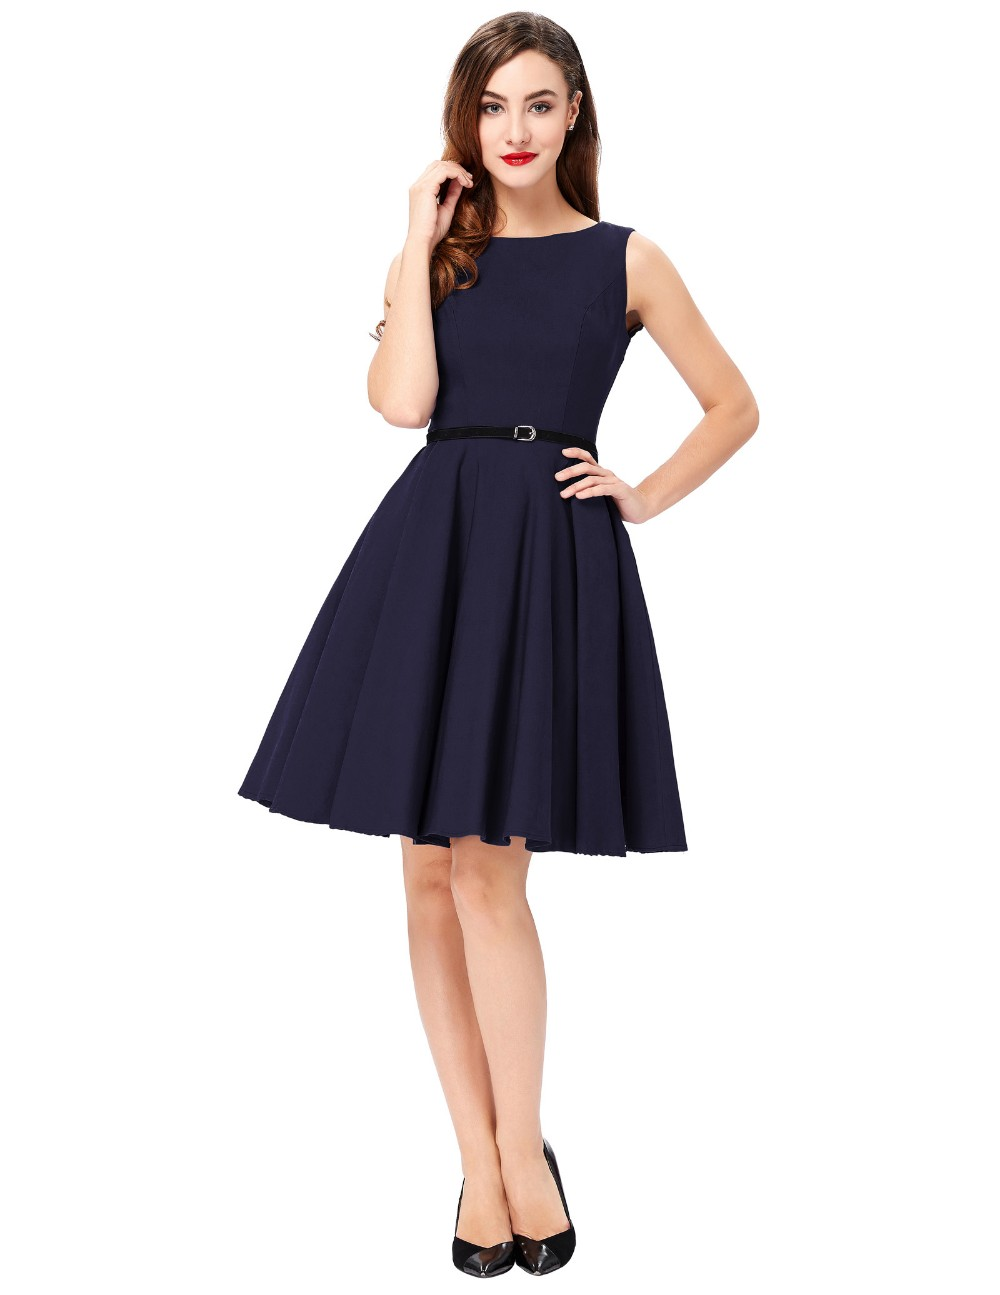 a3997b5d585 2018 Ladies 50s Rockabilly Retro Swing pinup Cocktail dress Womens Summer  Style robe Vintage plus size Party Dresses Vestidos